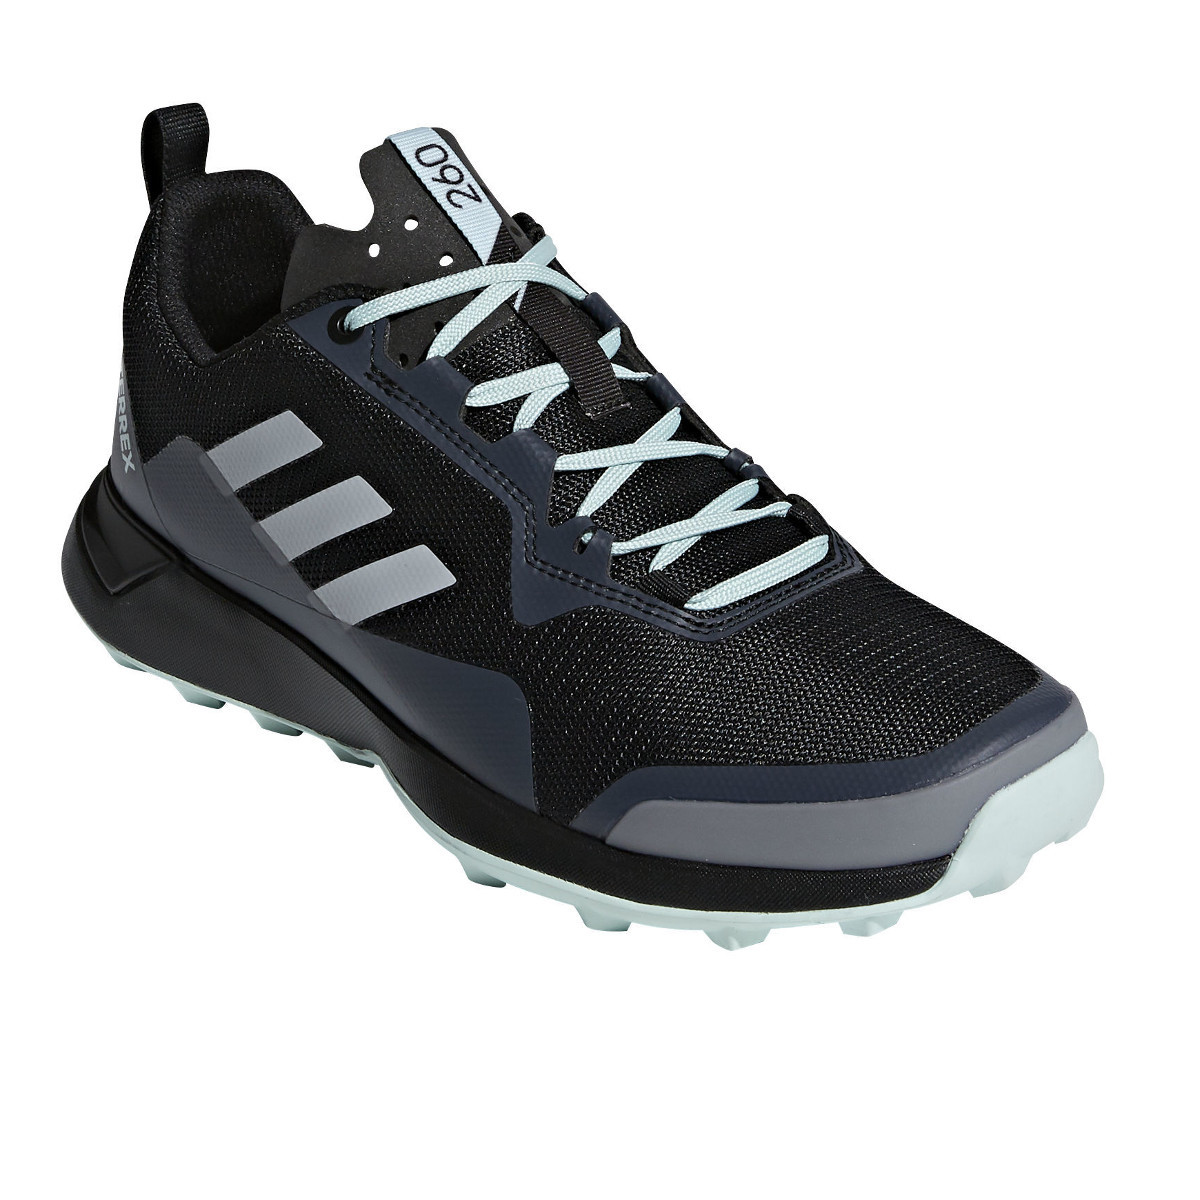 Terrex CMTK W Trail Running Shoes